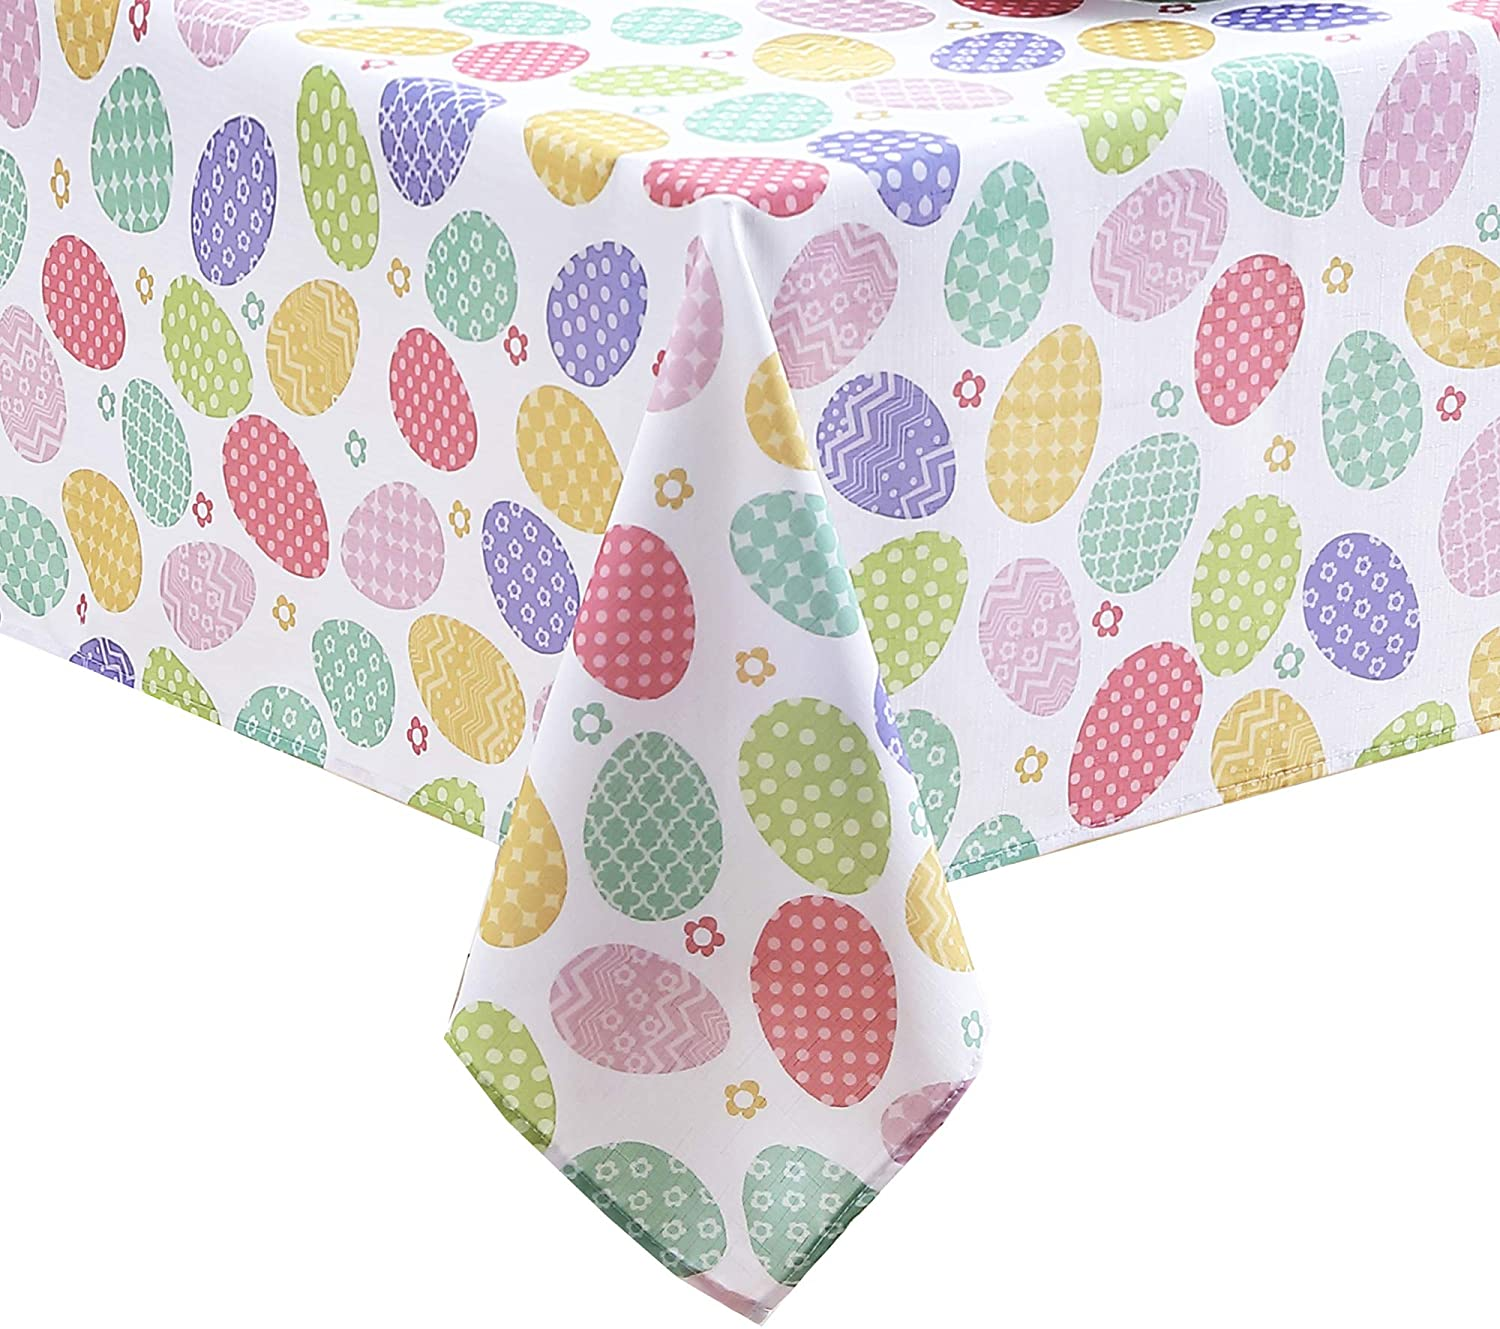 """Newbridge Colored Easter Egg Spring and Easter Fabric Tablecloth - Polka Dot, Zig Zag, Floral Decorated Easter Egg Design Easy Care, Stain Resistant Fabric Tablecloth, 70"""" Round"""